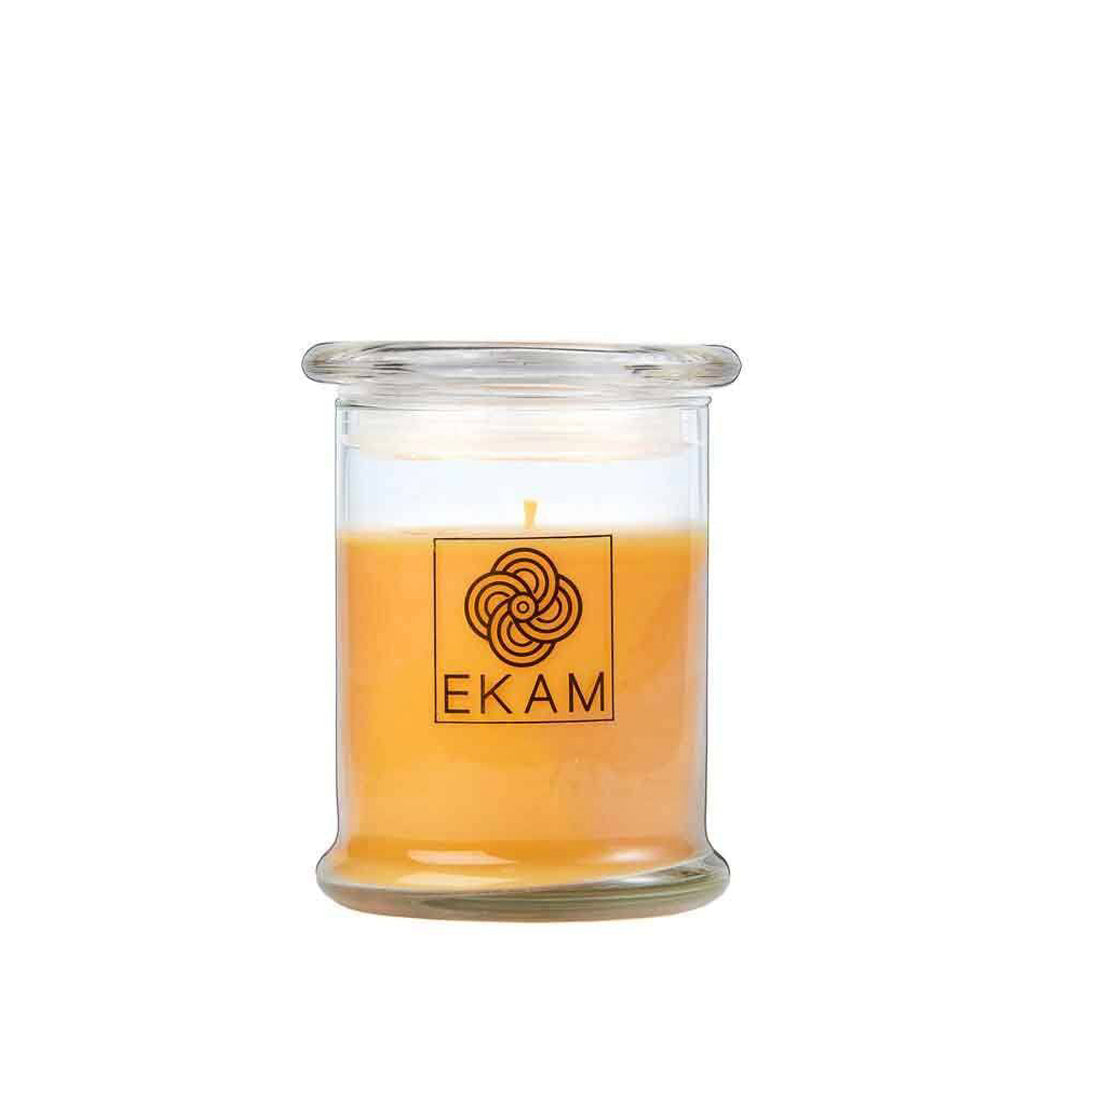 Ekam Fruit Splash Scented Ring Jar Candle